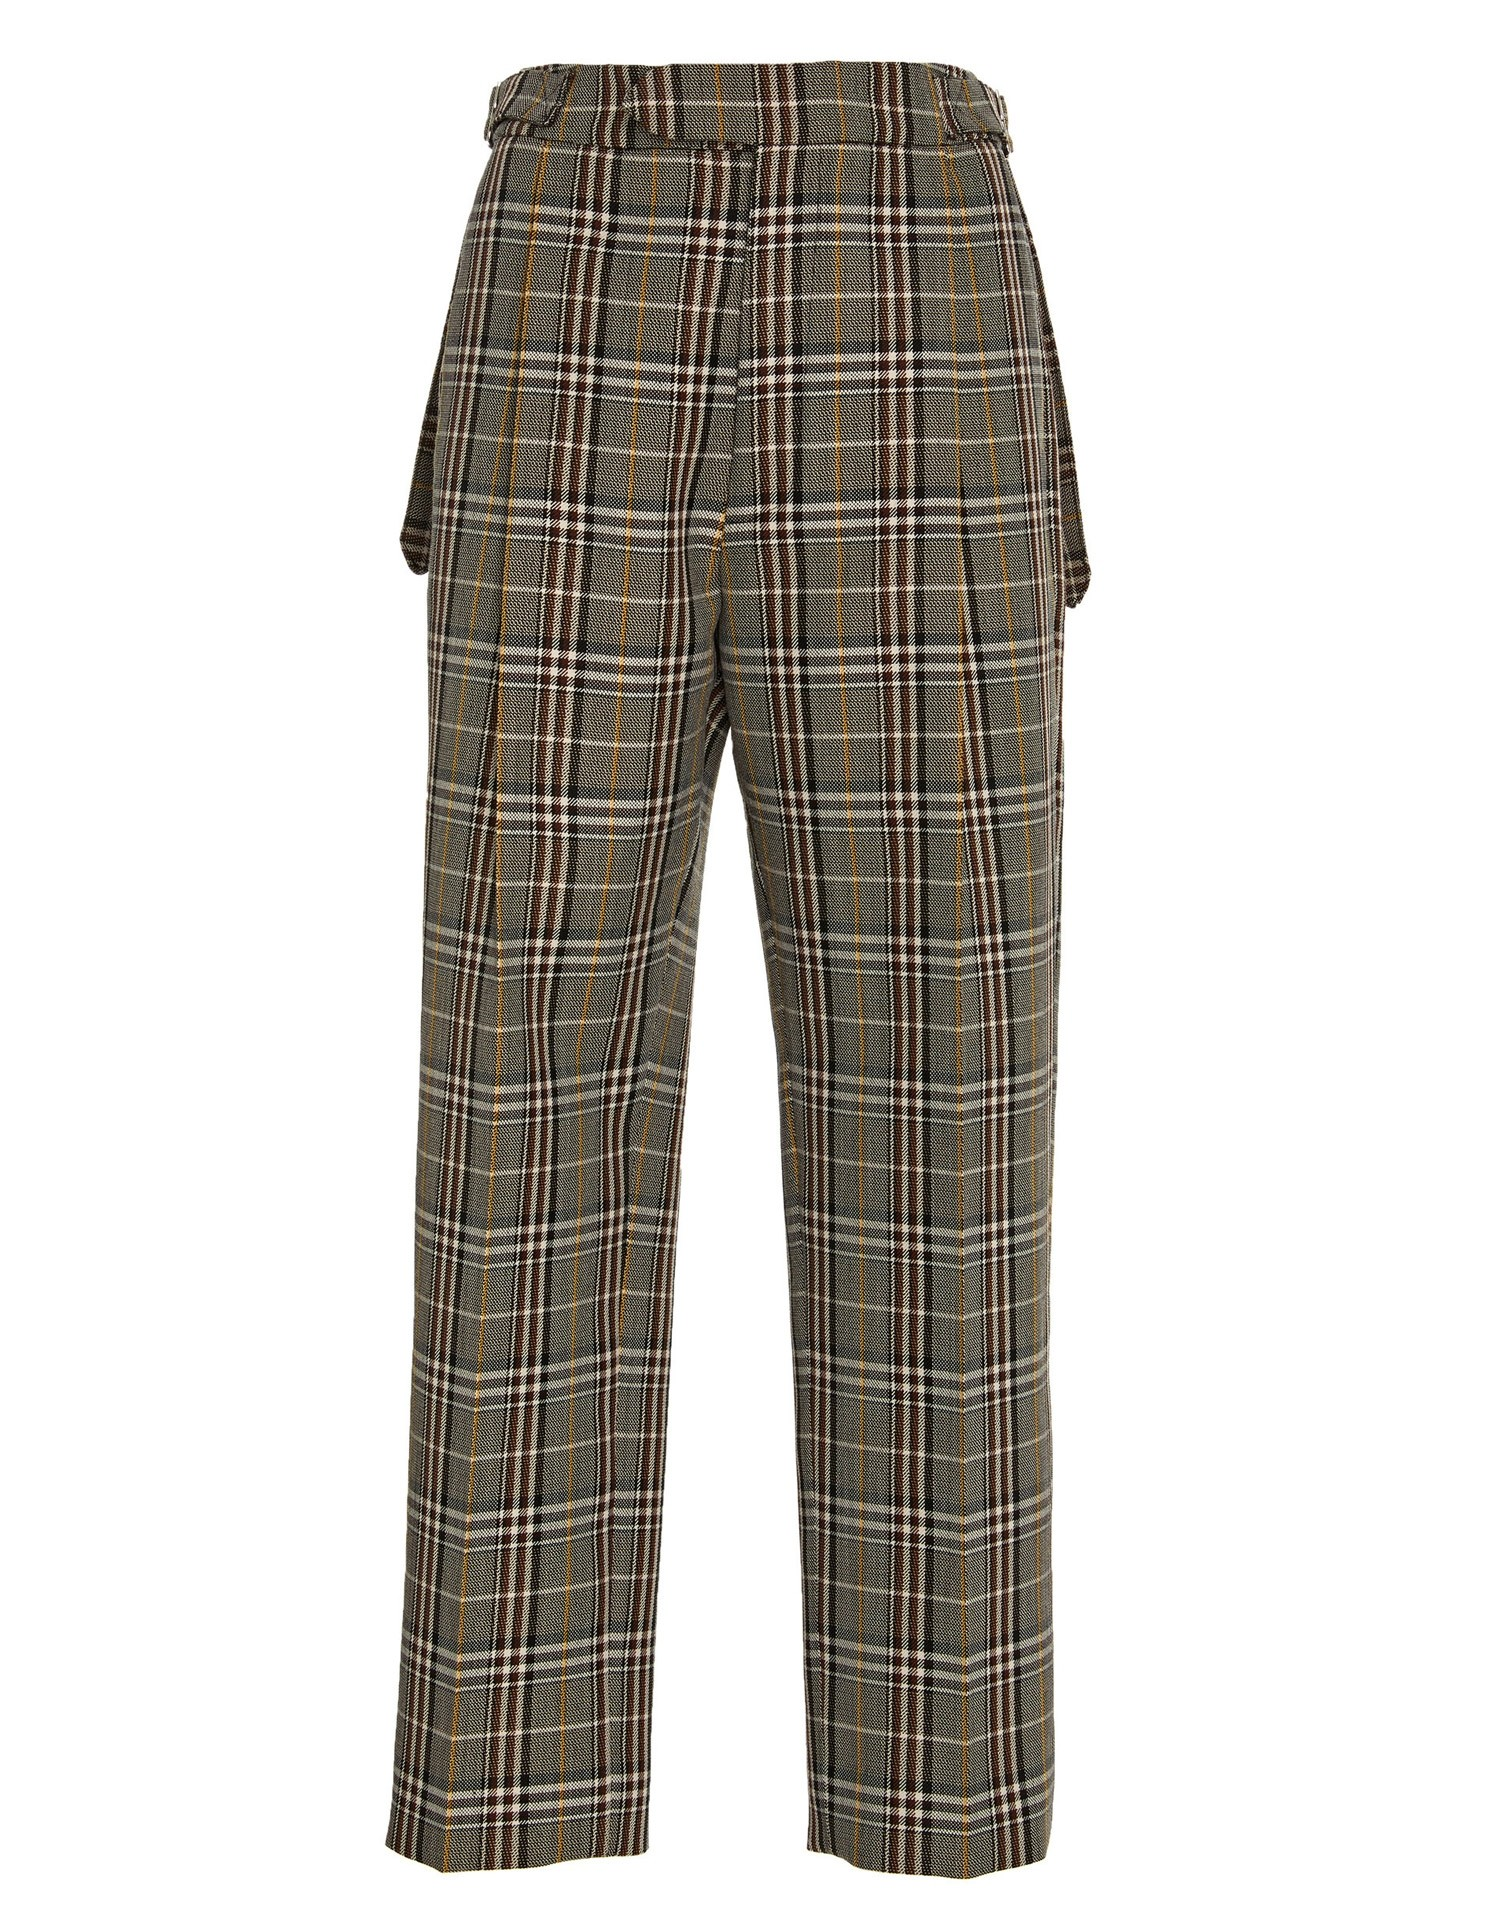 Pleated Trouser Charcoal Plaid